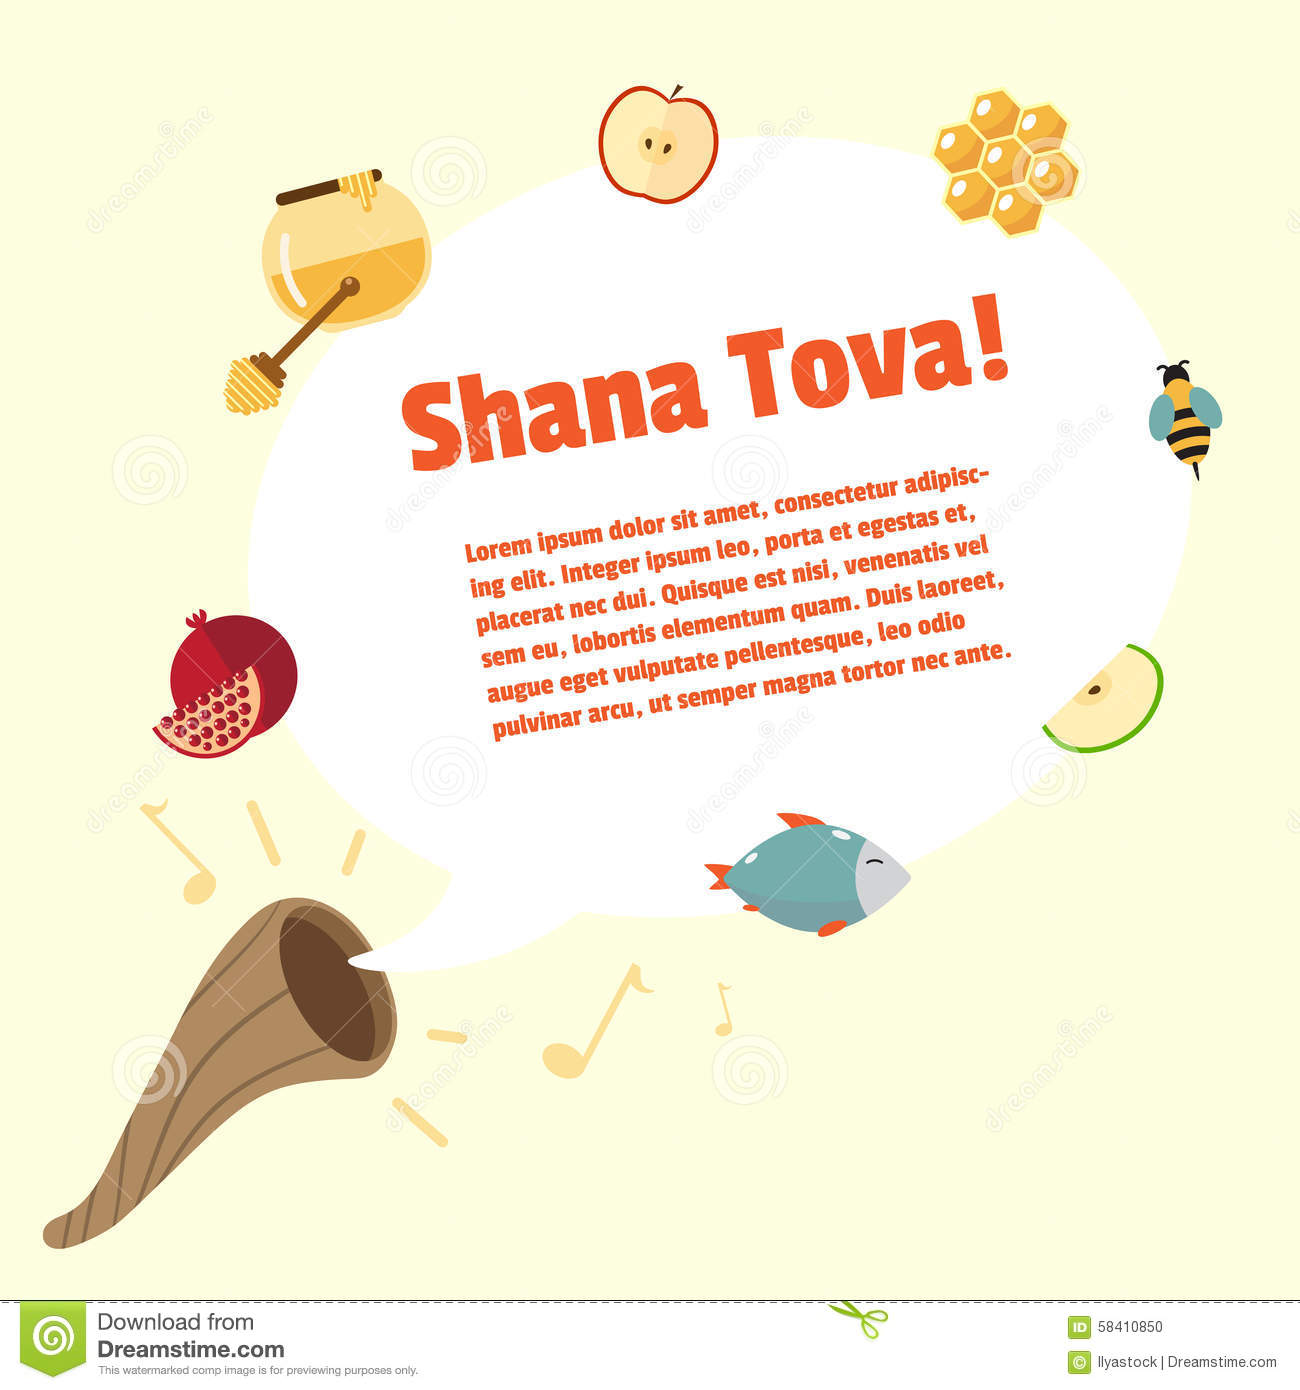 Shana tova rosh hashanah jewish new year vector greeting card stock shana tova rosh hashanah jewish new year vector greeting card kristyandbryce Choice Image